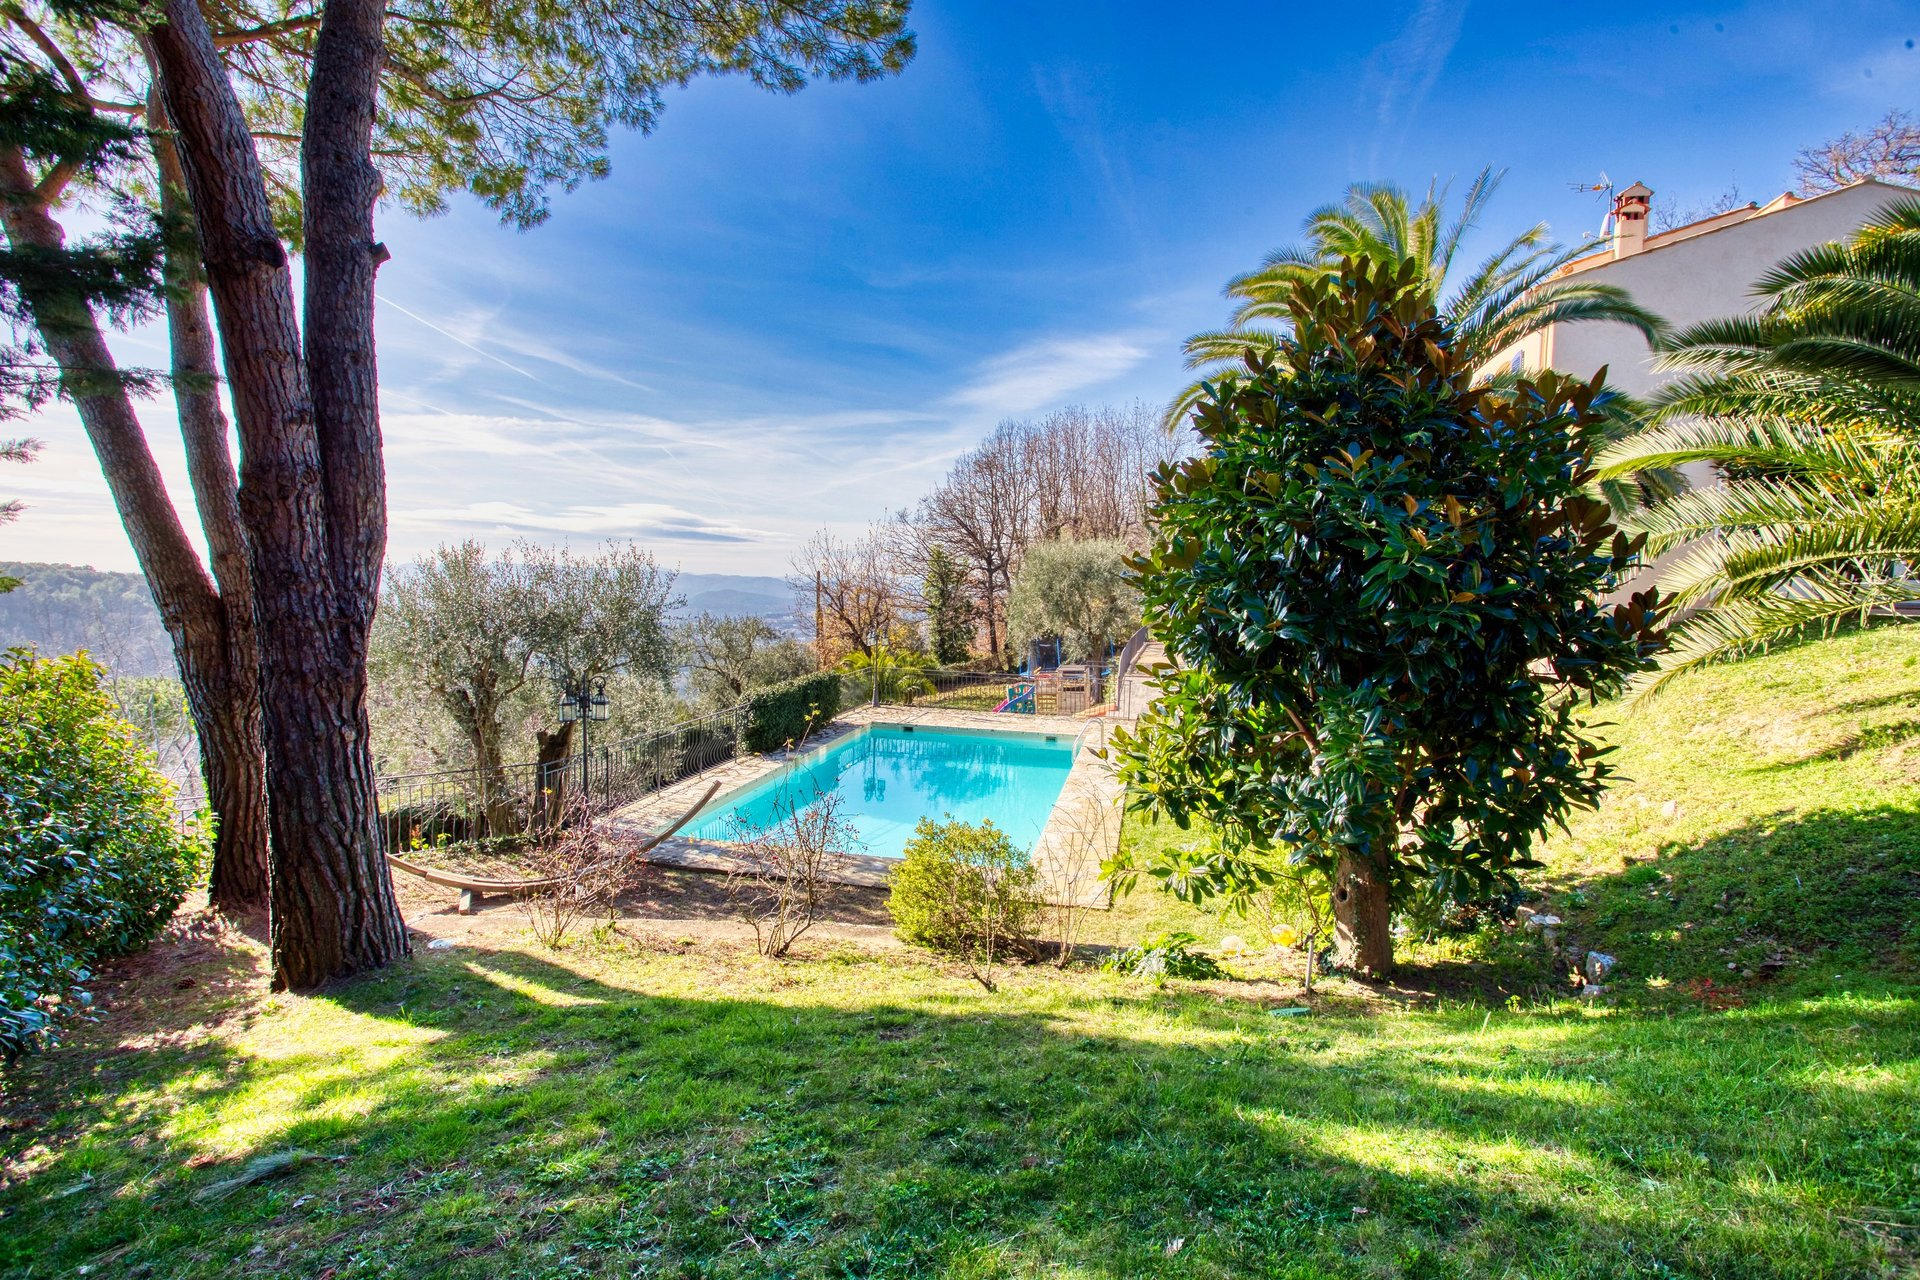 For sale large family villa 6 bedrooms with sea and mountain views near Valbonne